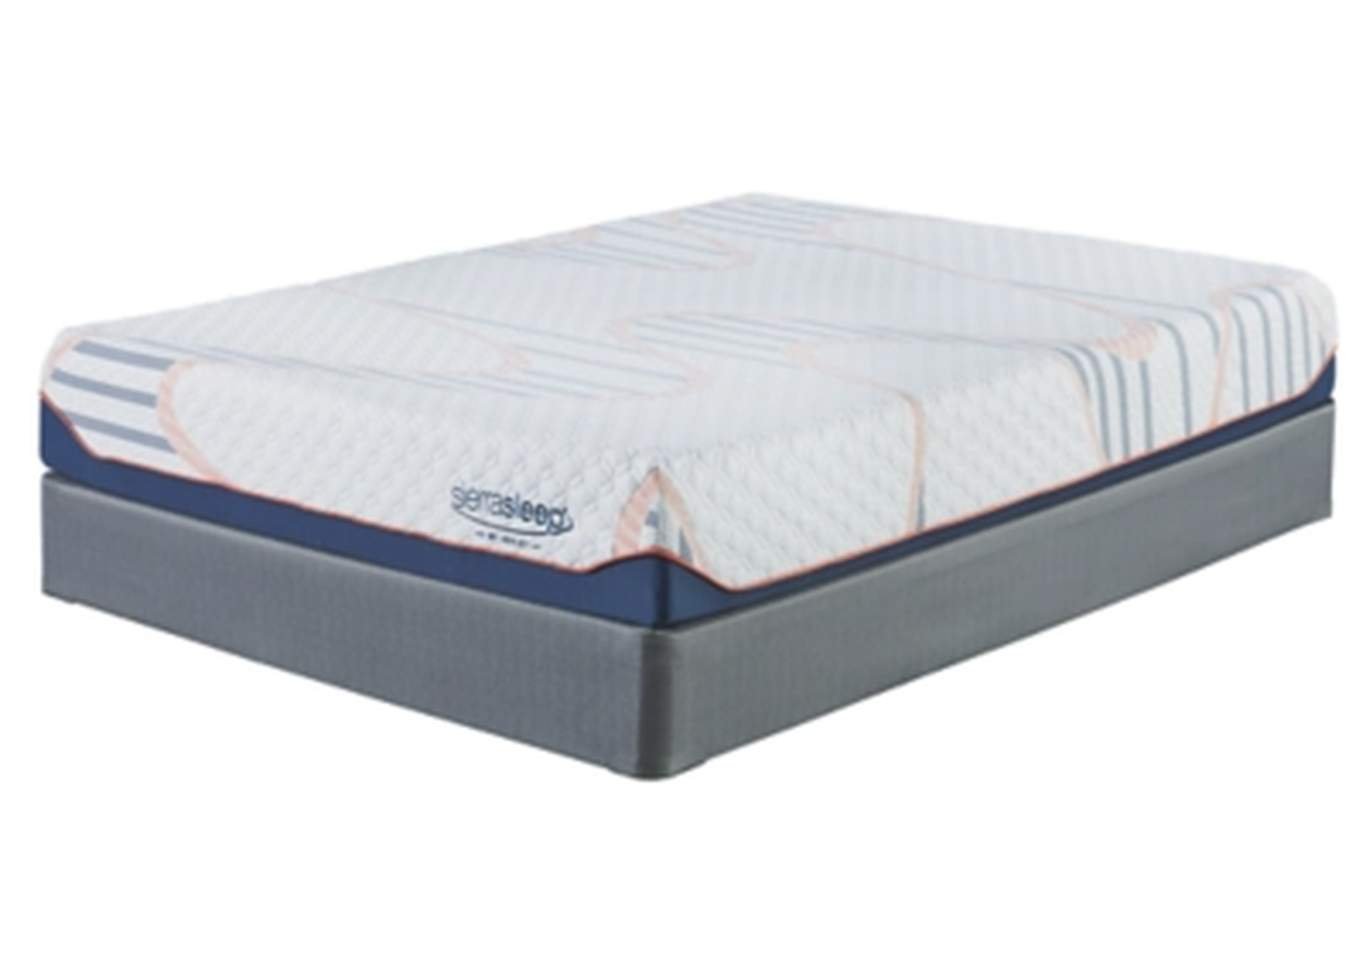 10 Inch MyGel White Full Mattress w/Foundation,Sierra Sleep by Ashley